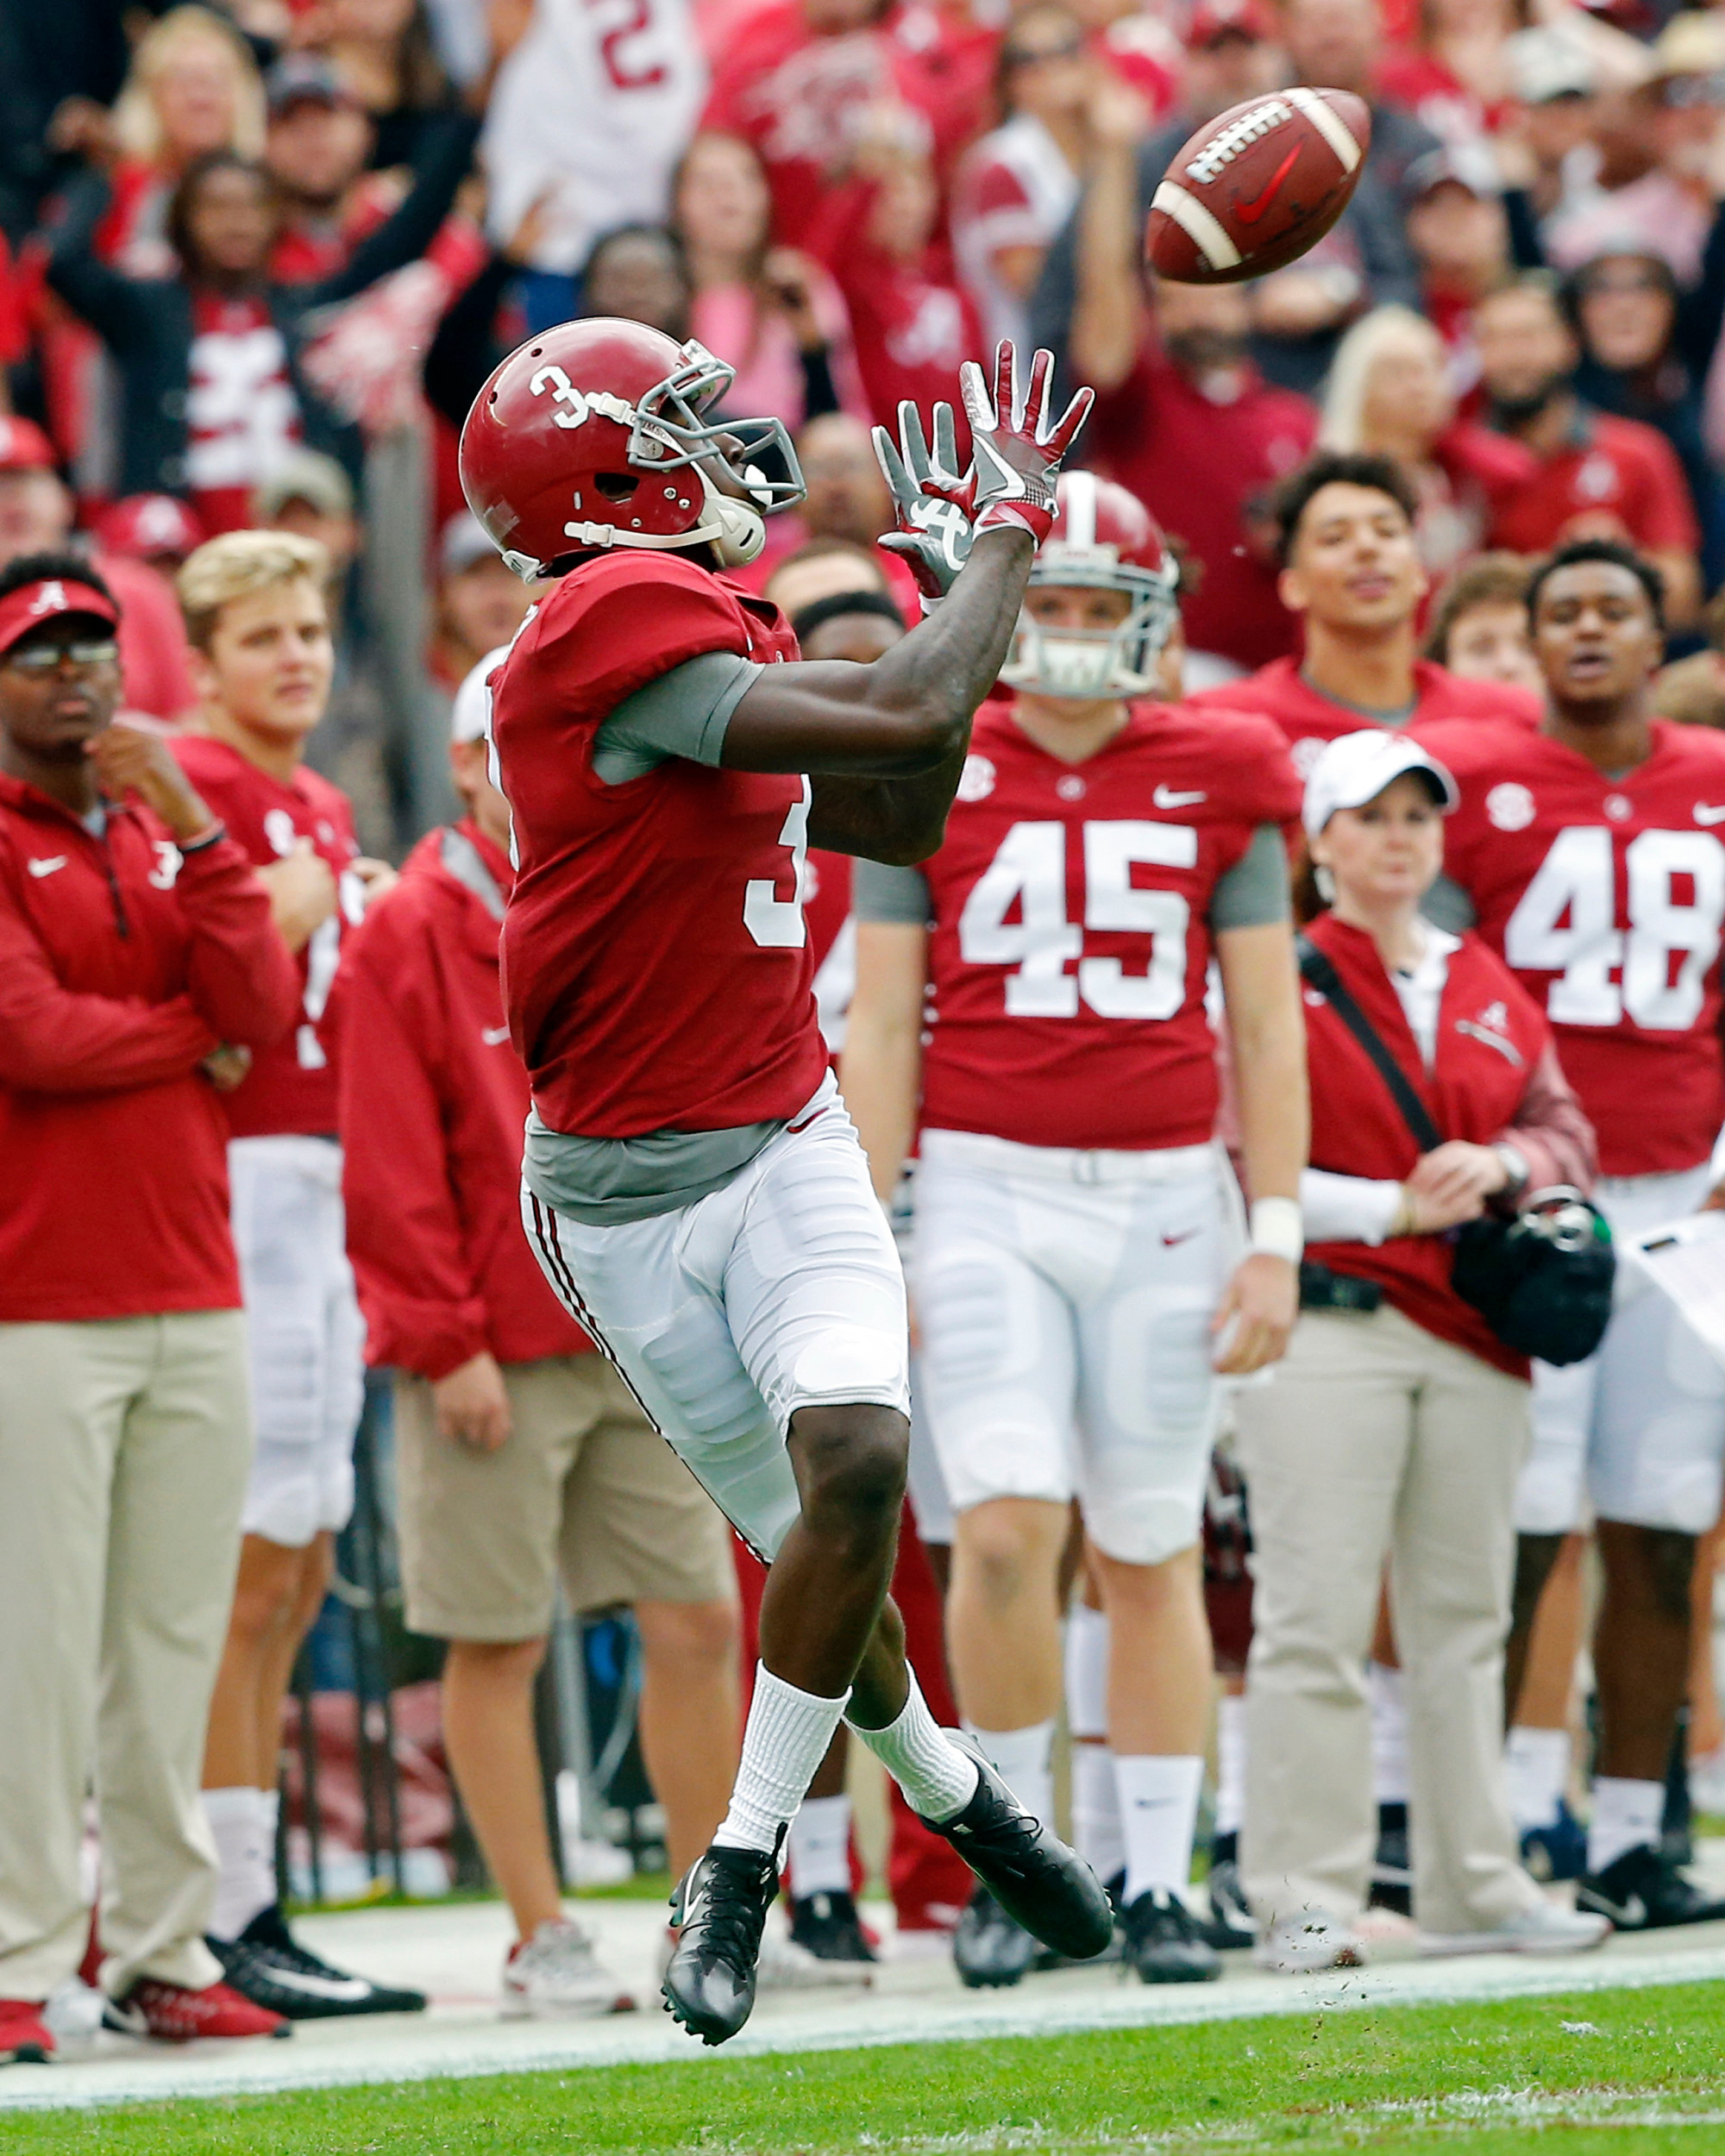 Alabama Crimson Tide wide receiver Calvin Ridley (3) looks to haul in a pass during the 1st half of the game between the Mercer Bears and the University of Alabama Crimson Tide at Bryant-Denny Stadium in Tuscaloosa, Al on 11/18/2017.